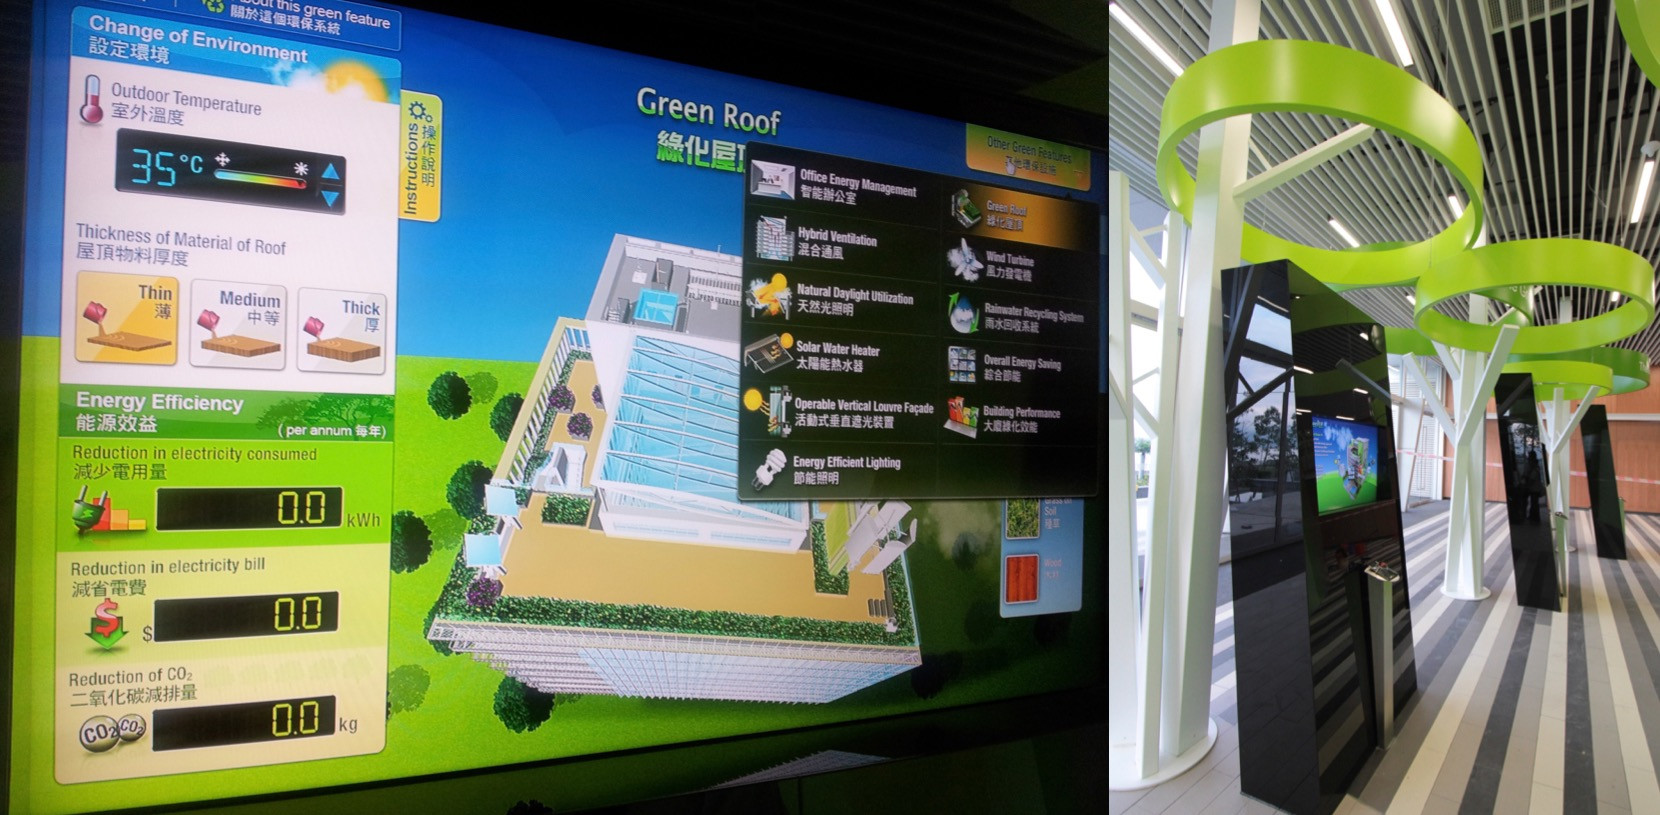 HKSTP-Green18 Smart building interactive kiosk